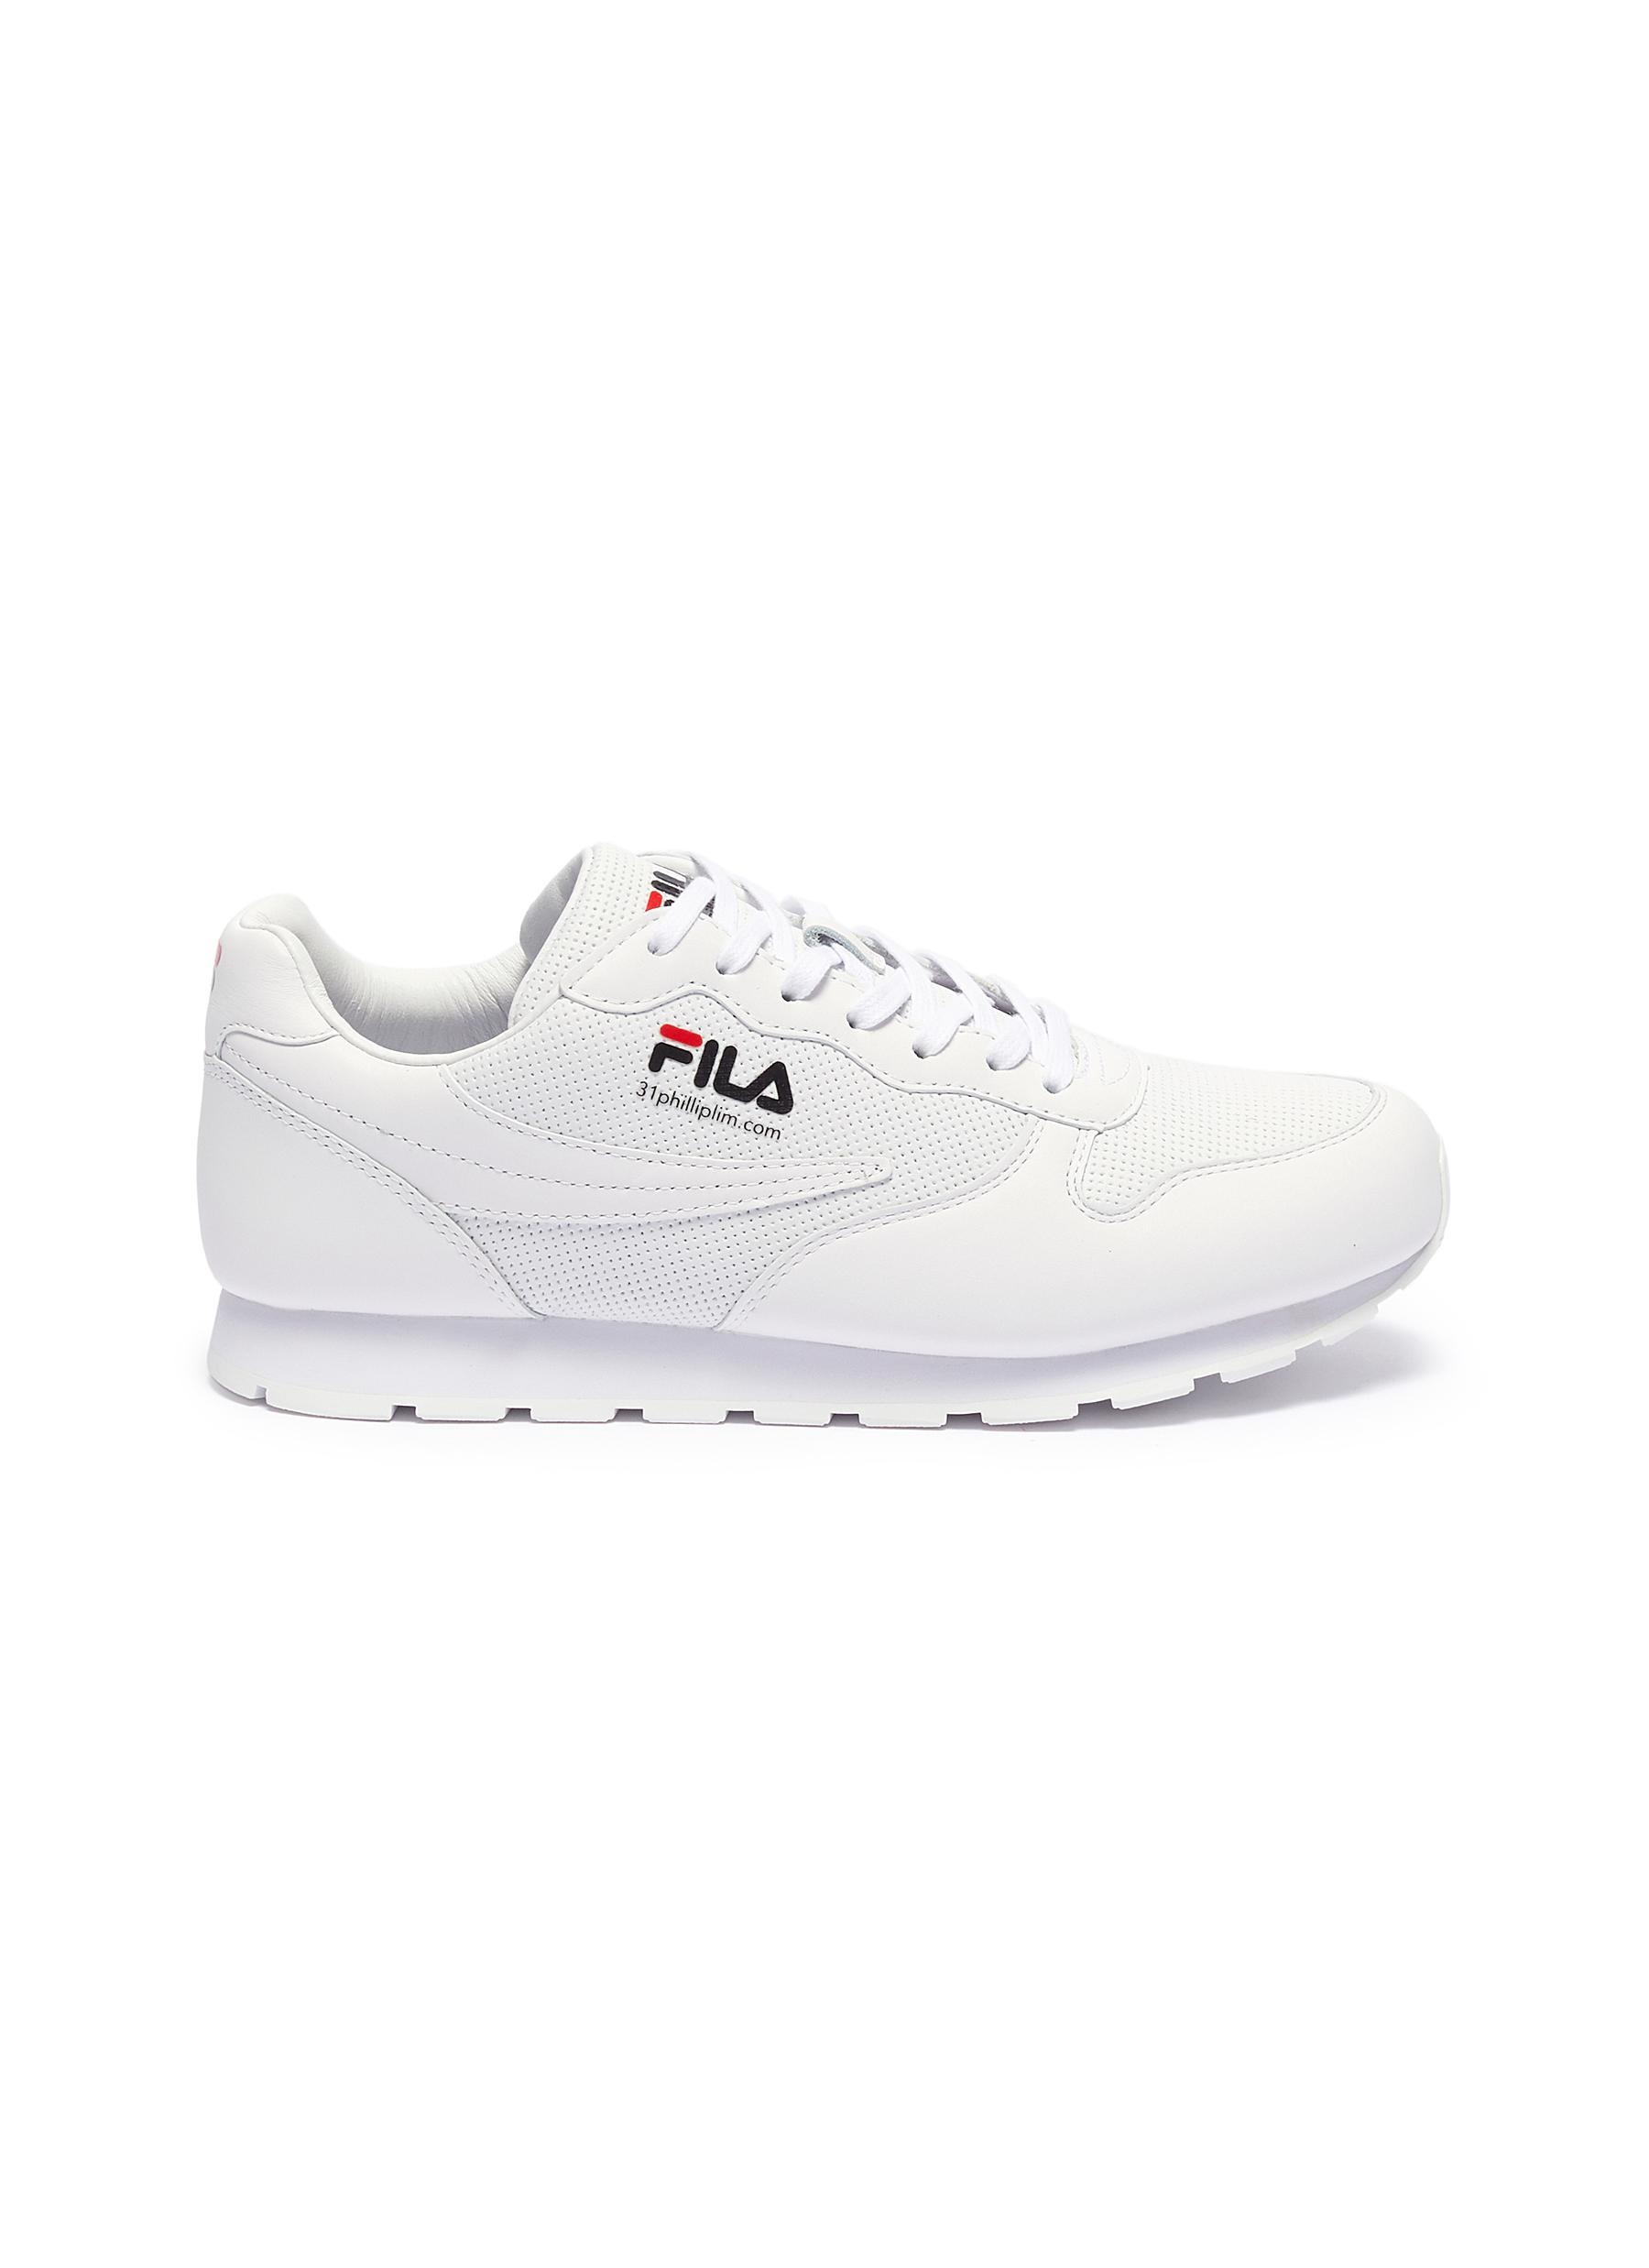 Perforated panel leather sneakers by Fila X 3.1 Phillip Lim